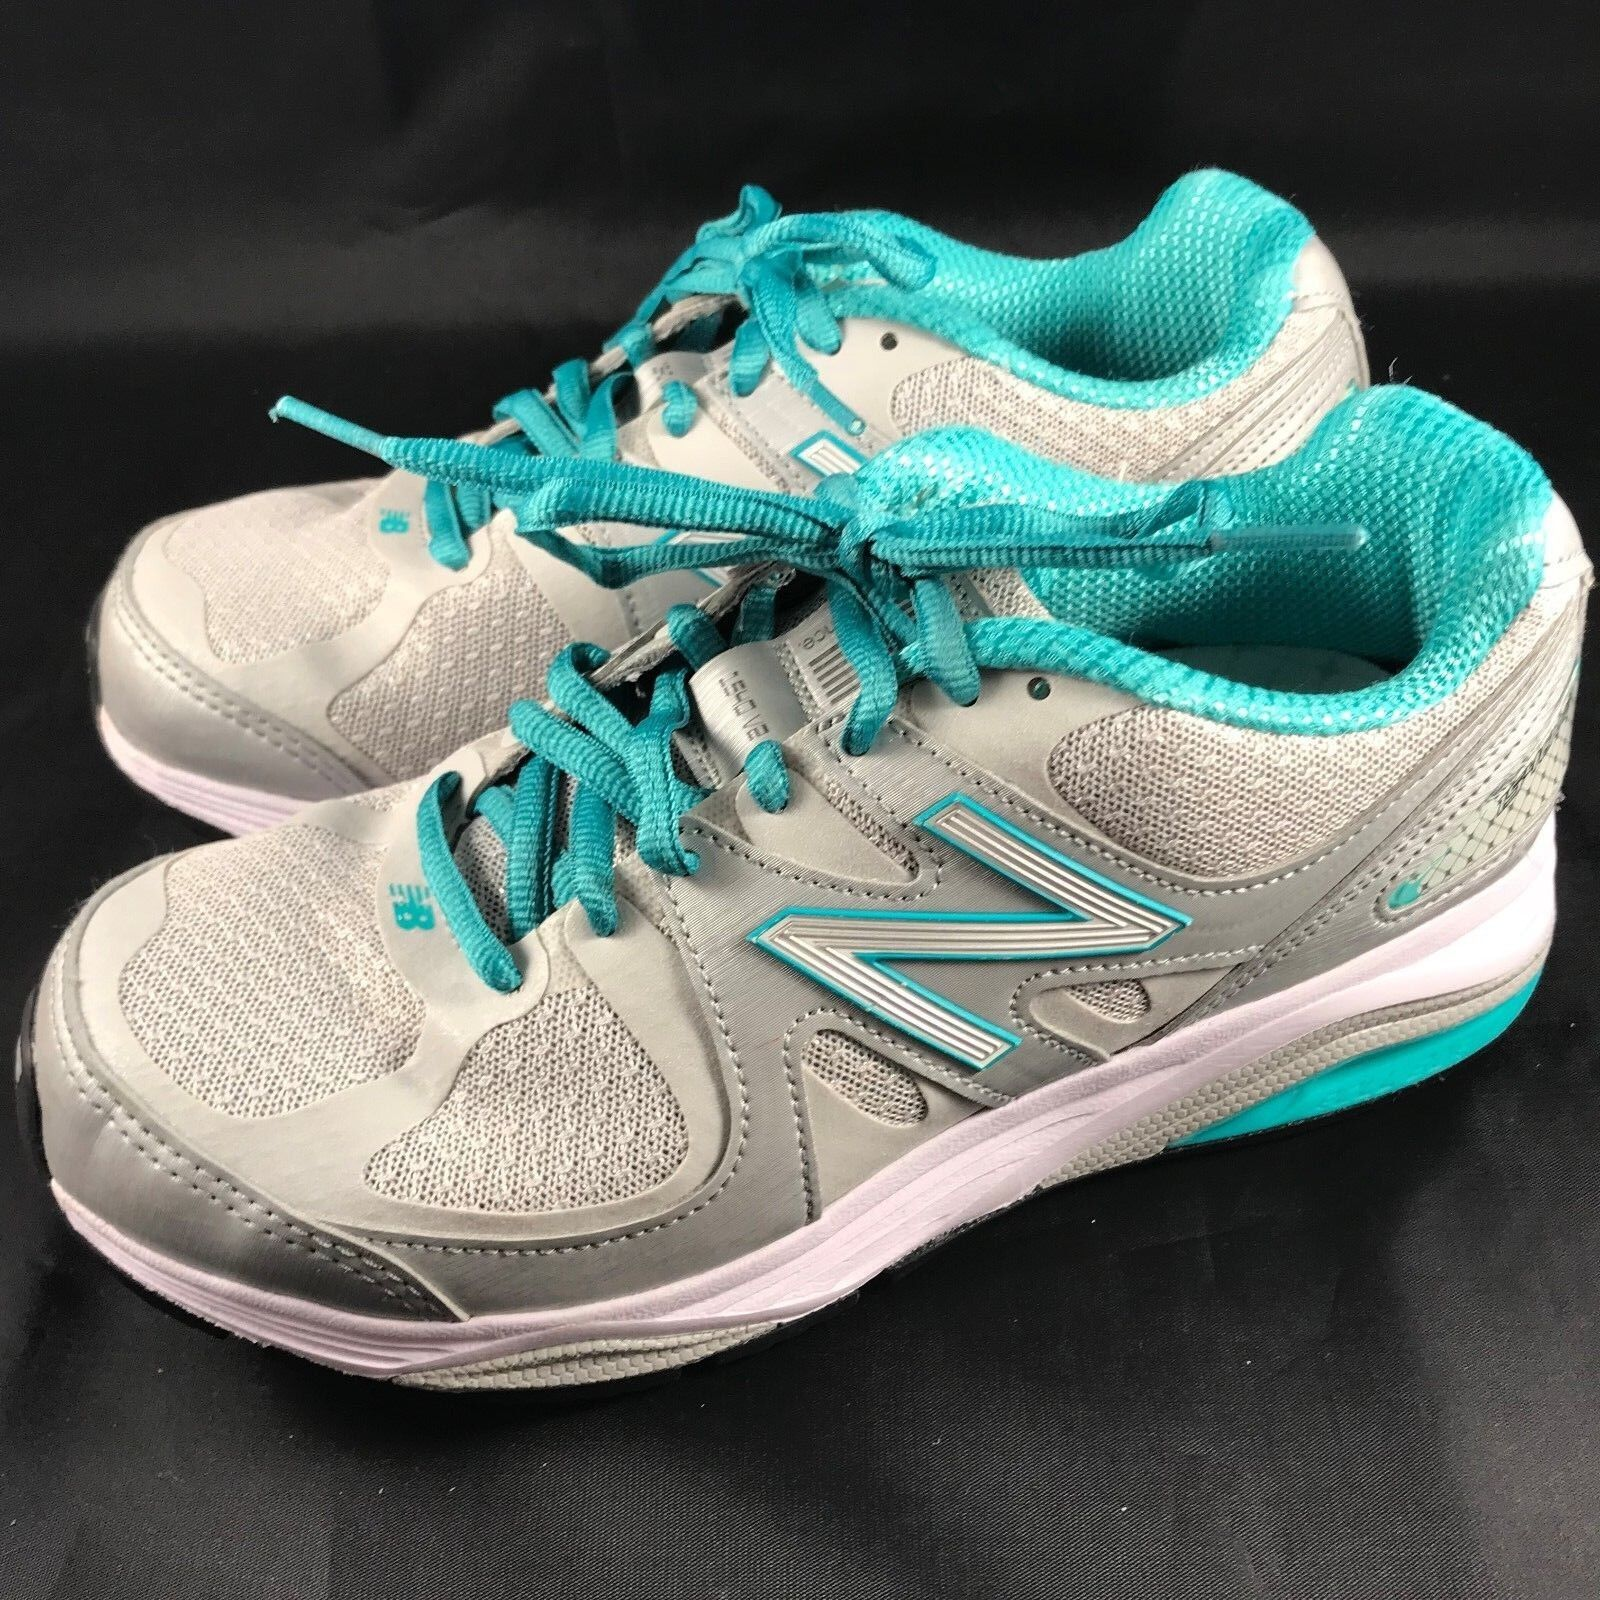 MINT NEW BALANCE 1540 V2 MOTION CONTROL STABILITY 160 6.5 37.5 (EE) Width